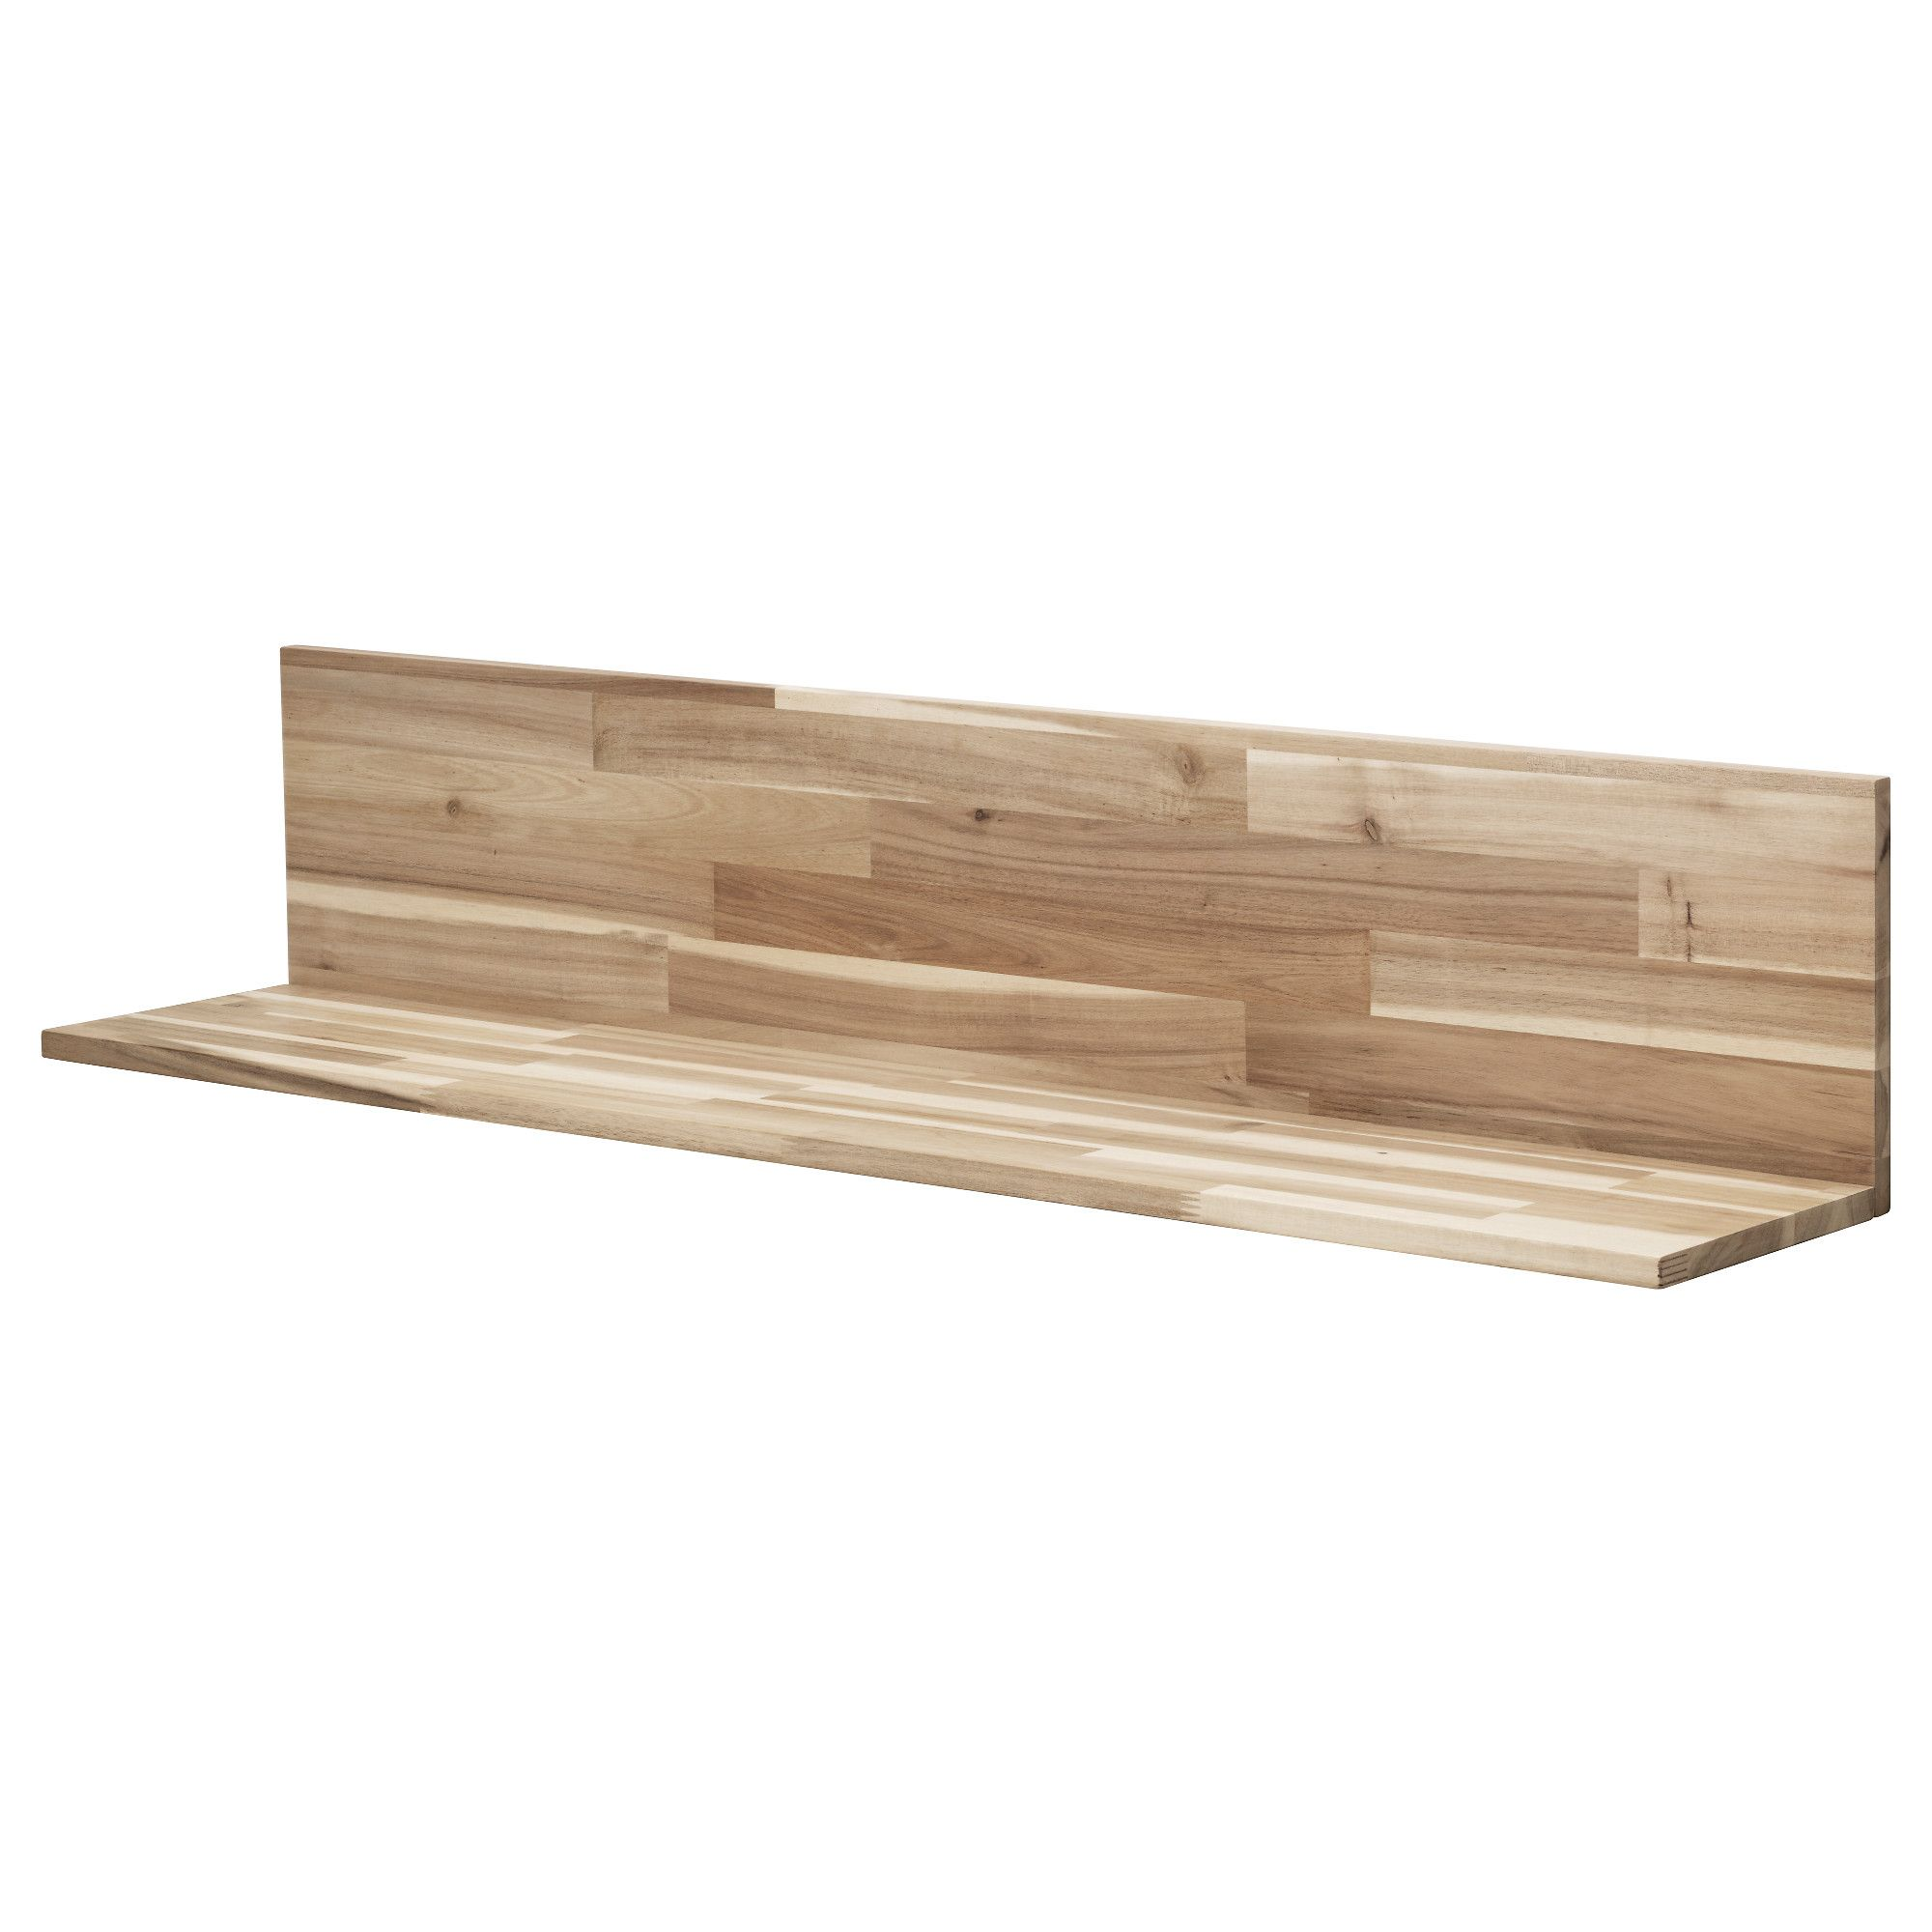 Skogsta Wall Shelf Acacia 47 1 4x9 7